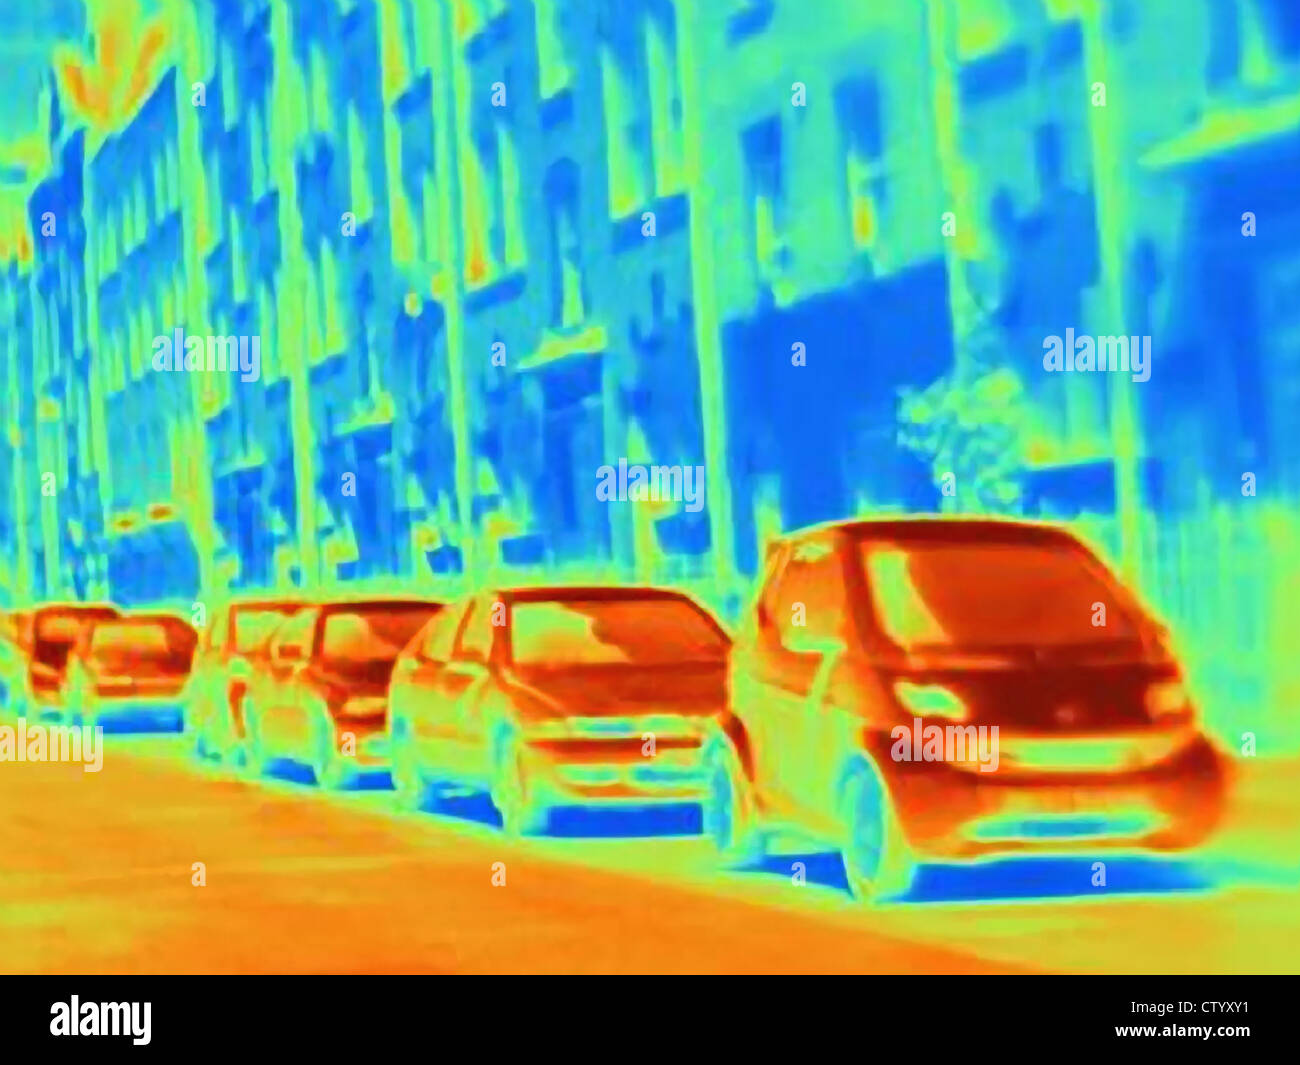 Thermal image of parked cars on street - Stock Image